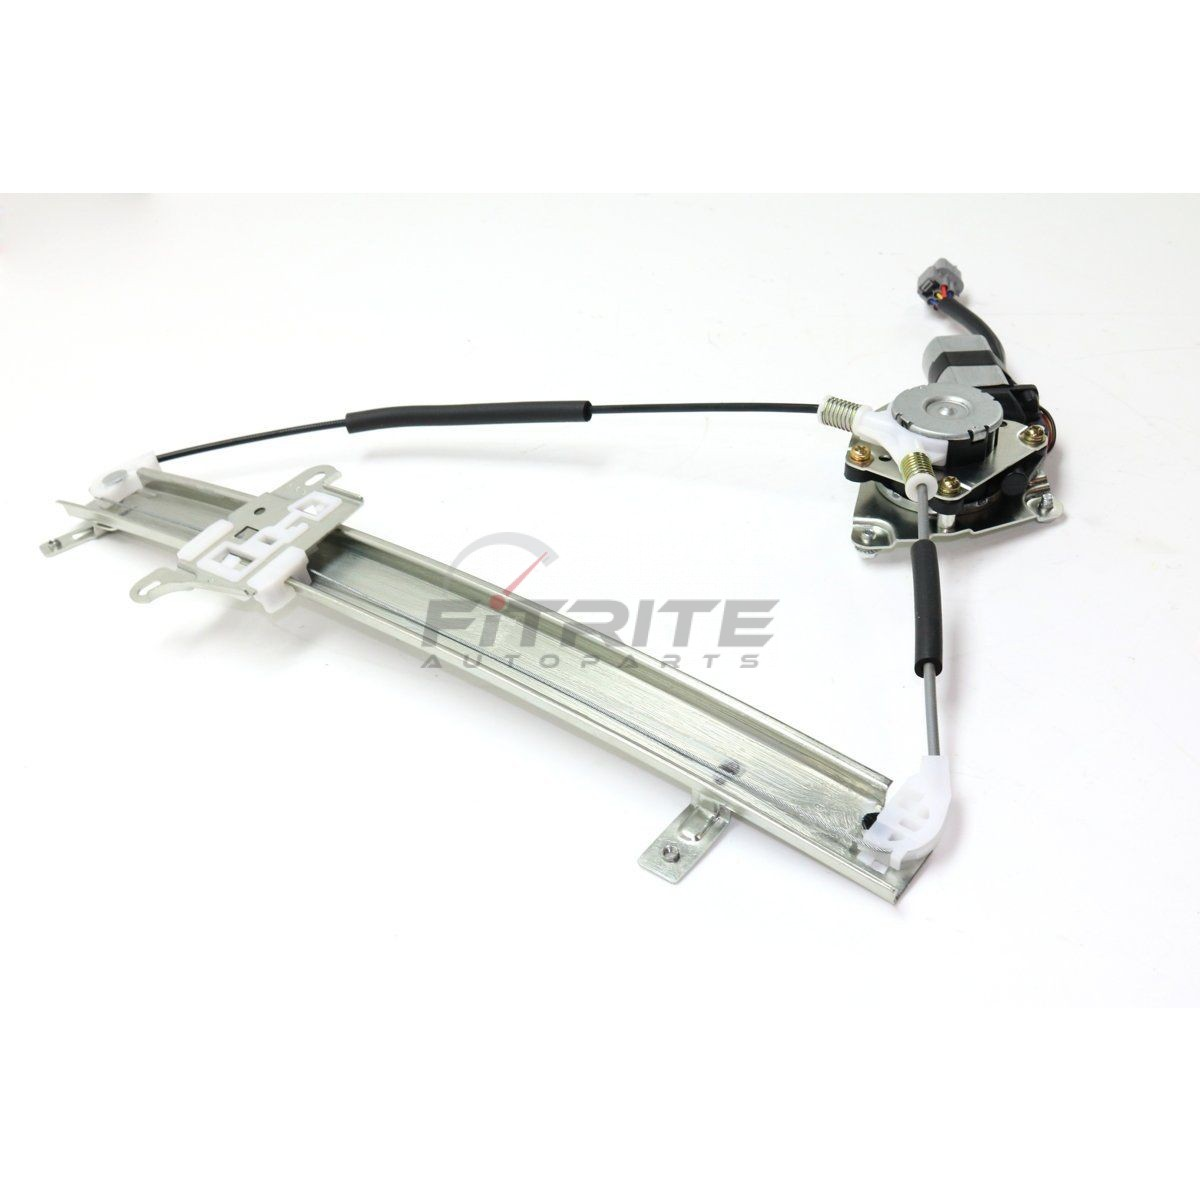 NEW FRONT RIGHT WINDOW REGULATOR FOR 2005-2012 ACURA RL